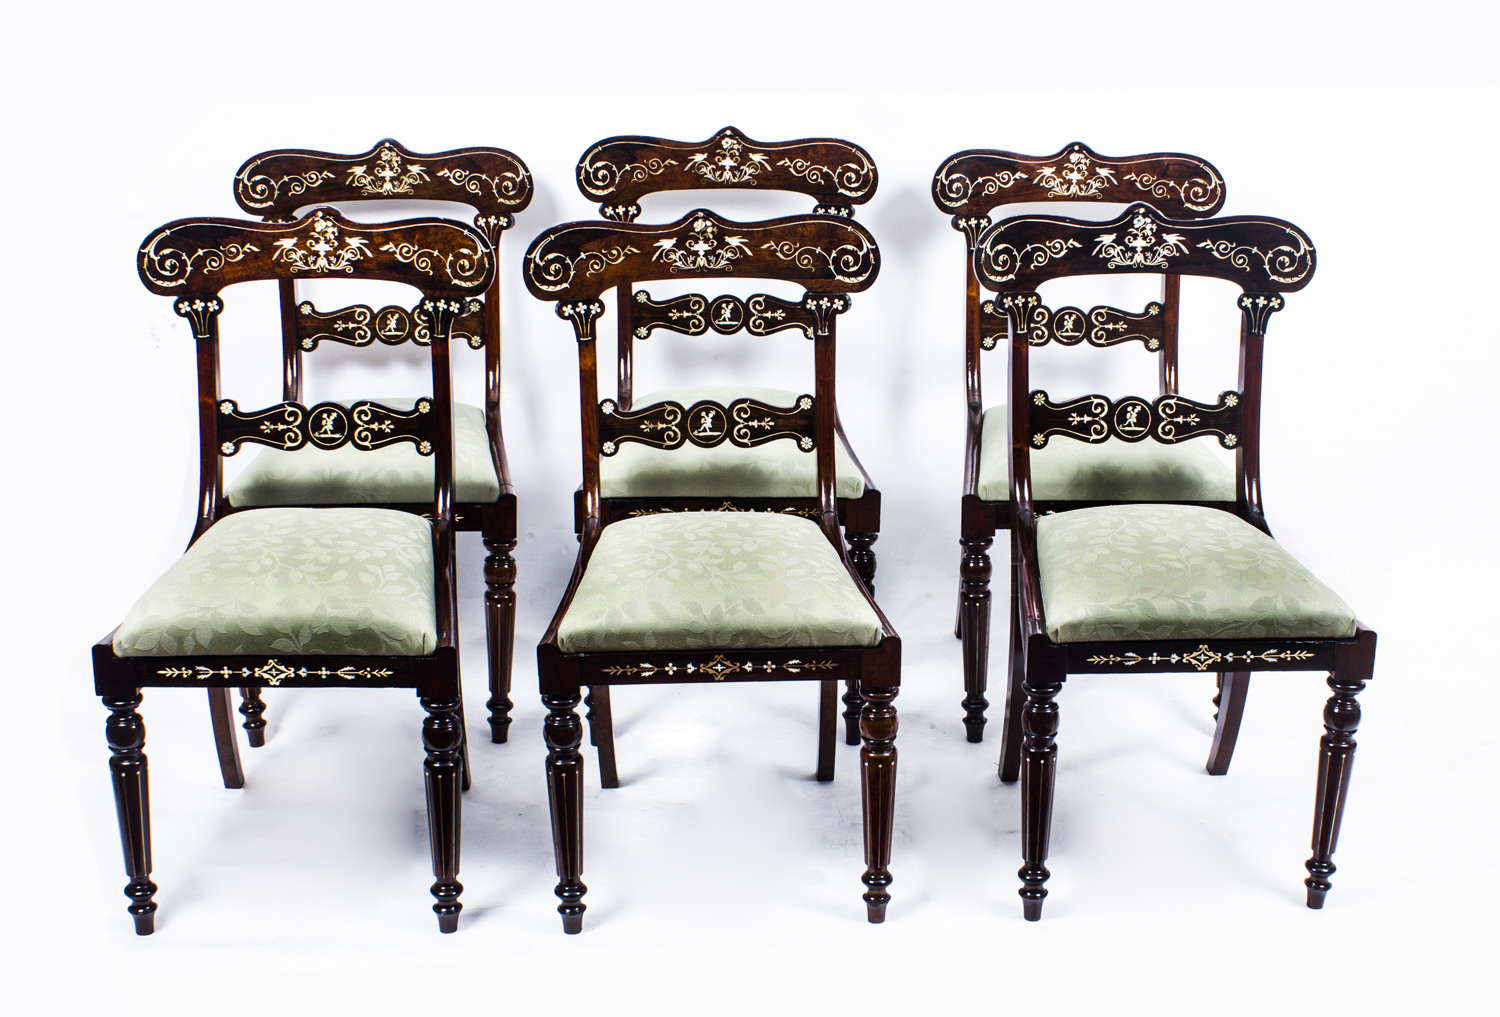 Antique Set 6 Regency Inlaid Rosewood Dining Chairs c1820 : 07107w Antique Set 6 Regency Inlaid Rosewood Dining Chairs c1820 1 from www.regentantiques.com size 1500 x 1017 jpeg 759kB